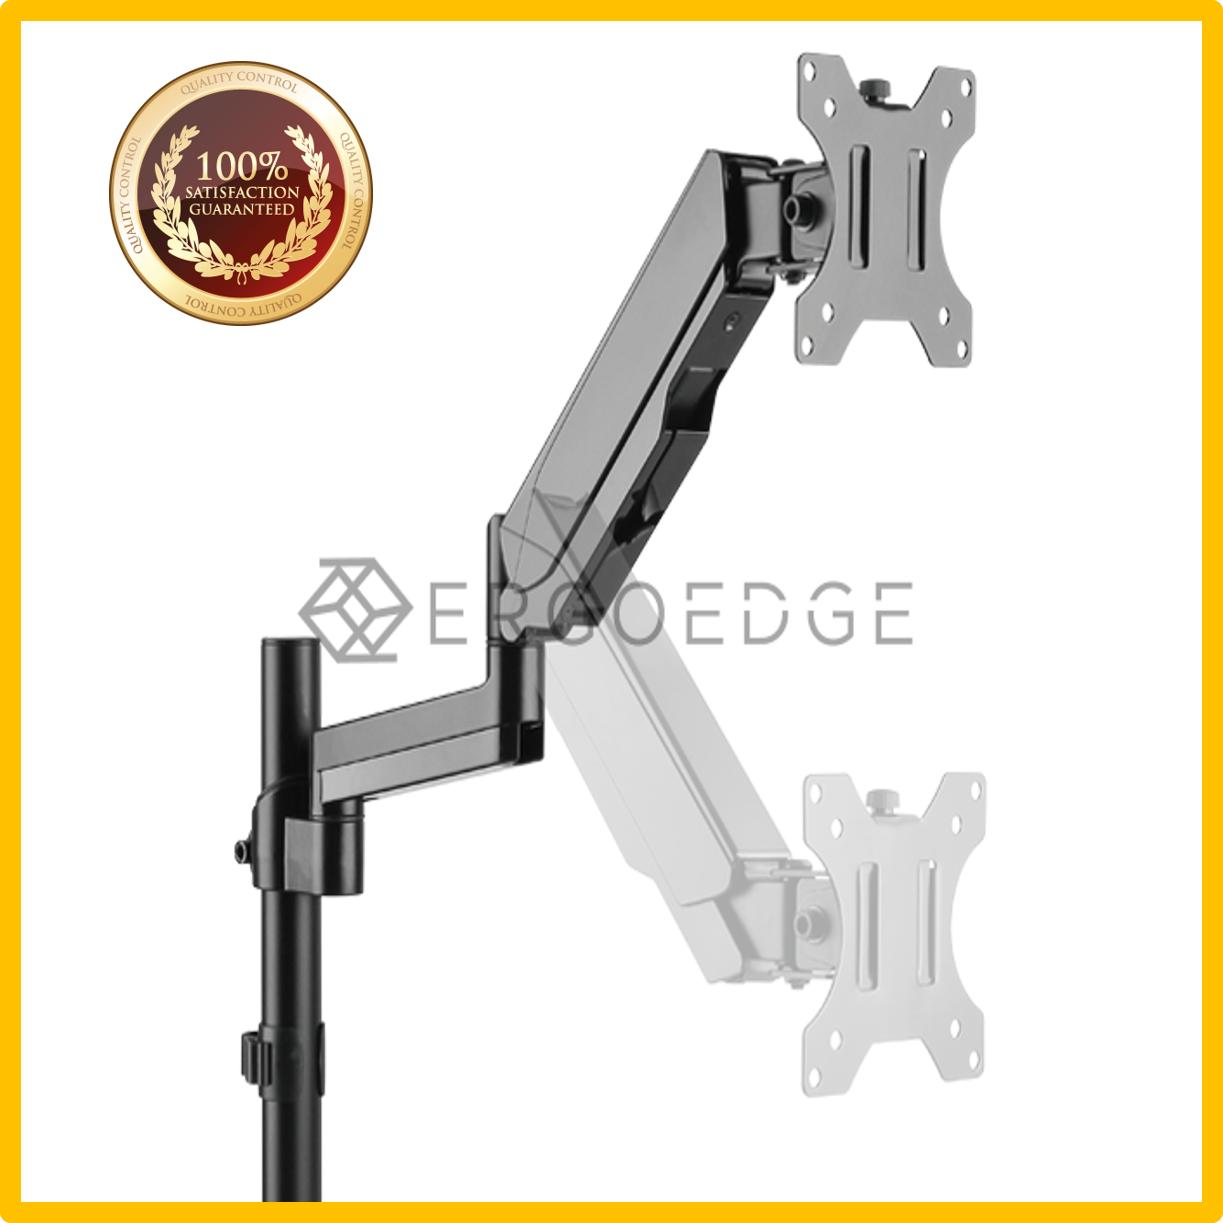 ErgoEdge Single Monitor Gas Spring Arm Mount, 17-32, Vesa Compatible, 1~8kg, Cable Management Included,  Desk Clamp, Hole Clamp,